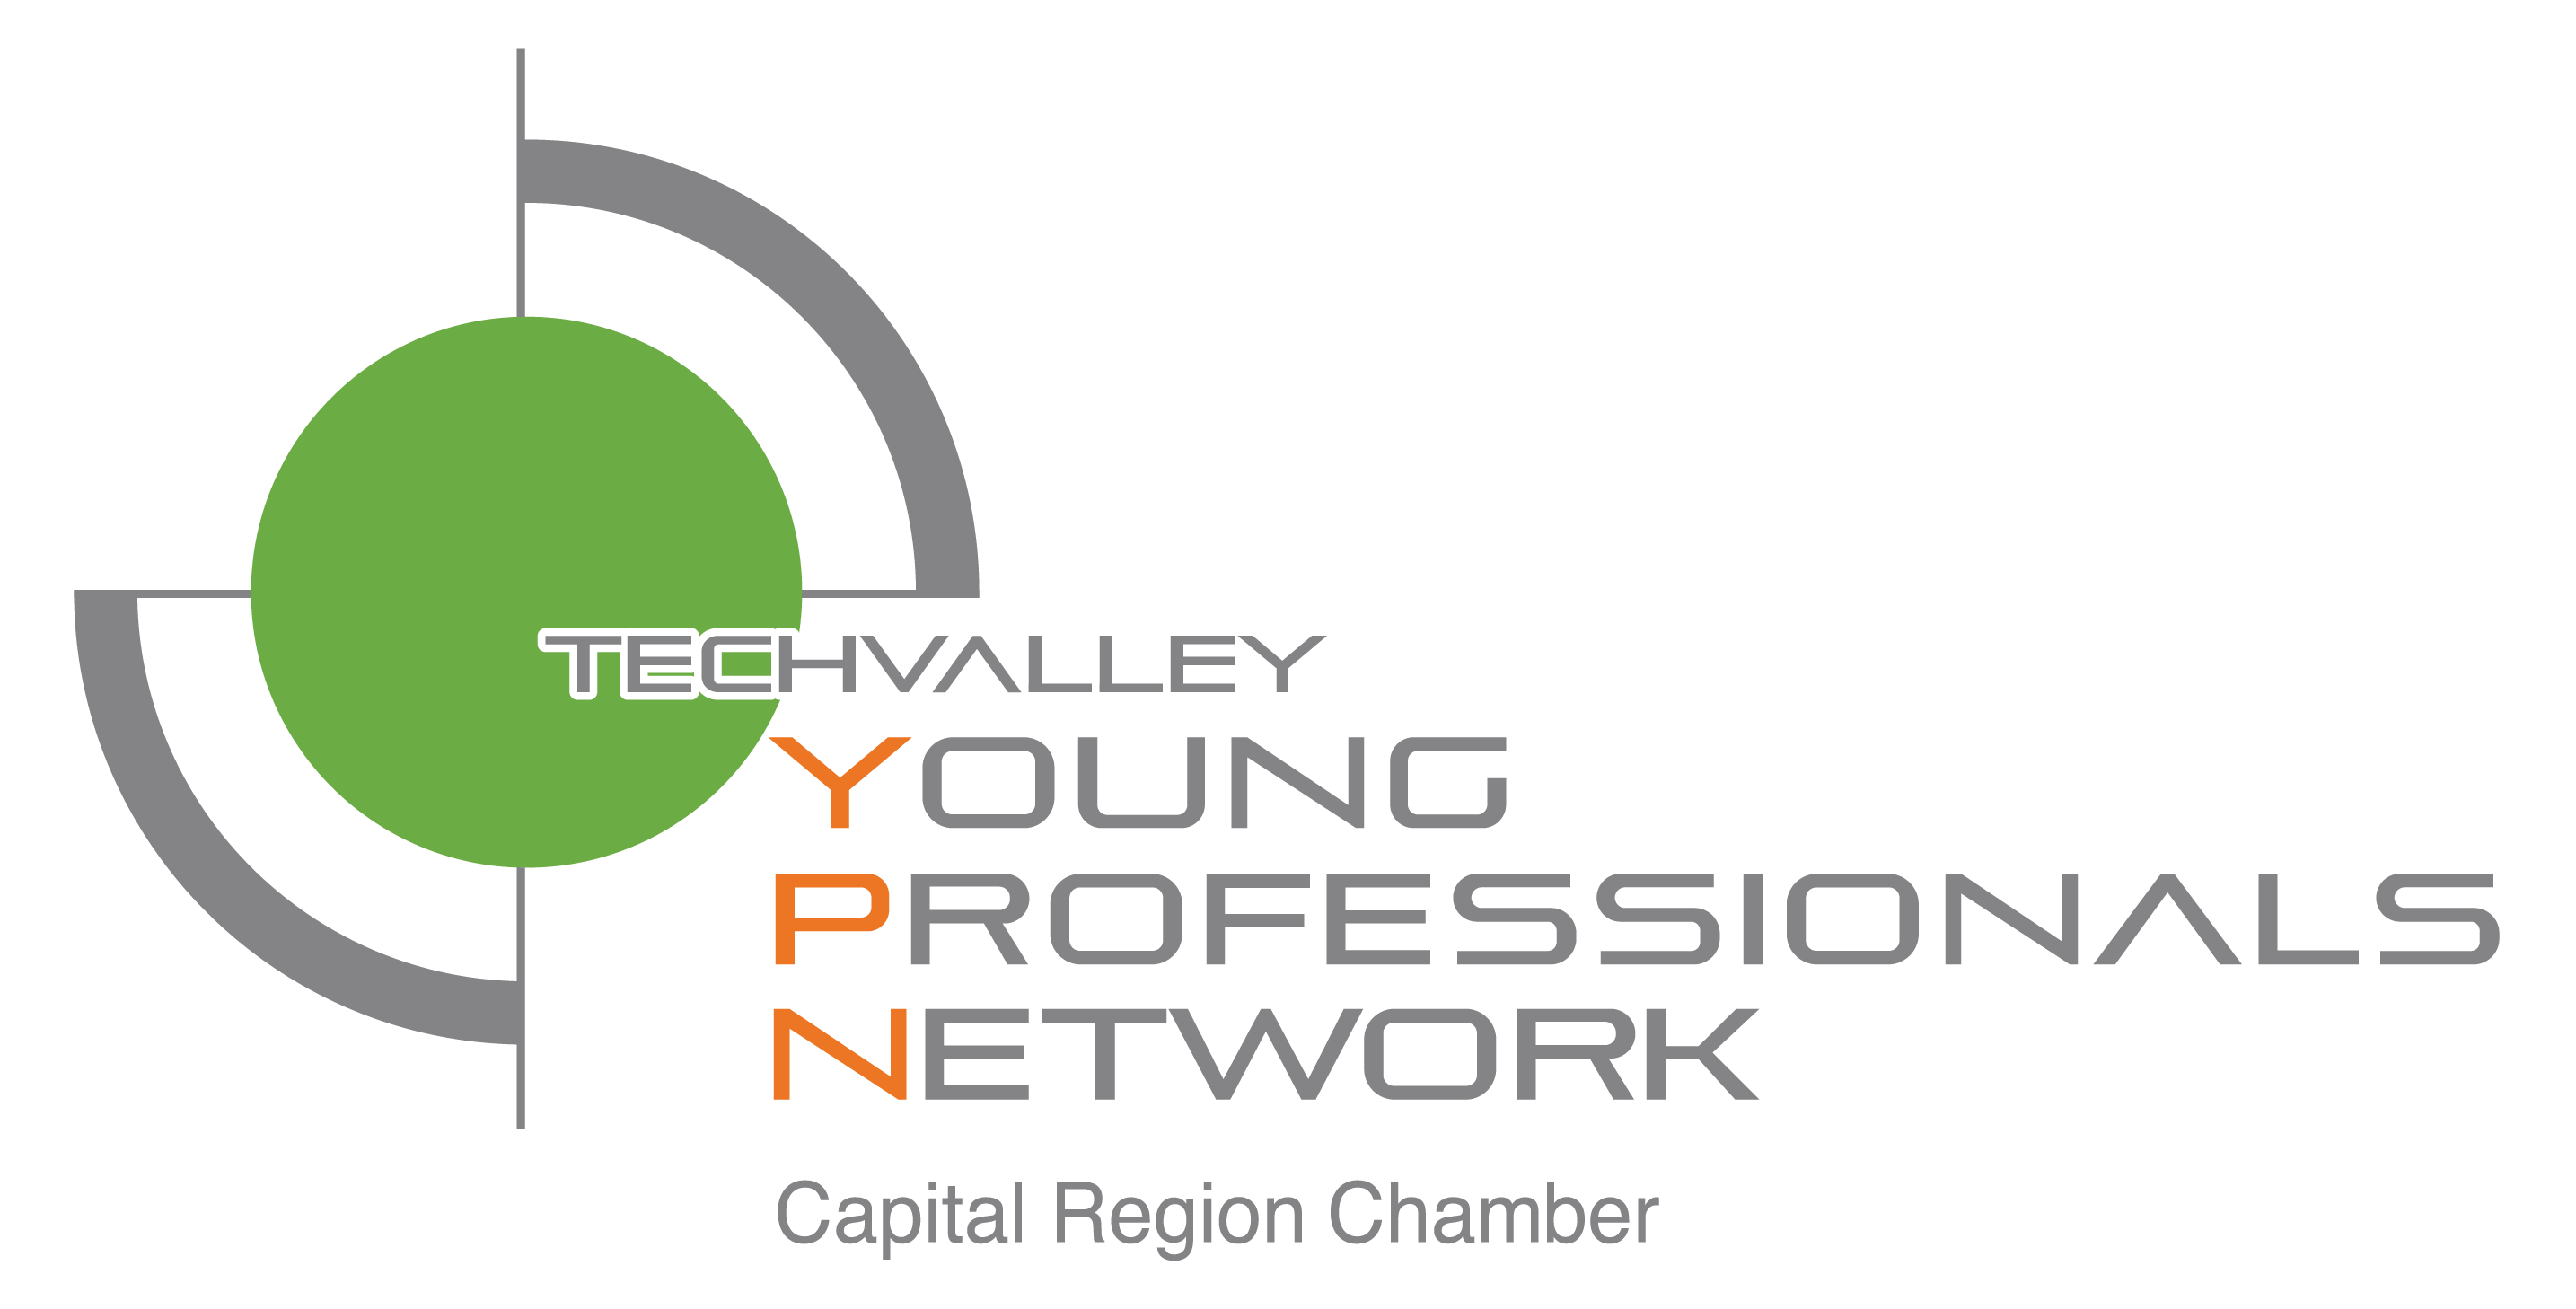 tech valley office. Tech Valley Office. Young Professionals Network (ypn) Office C